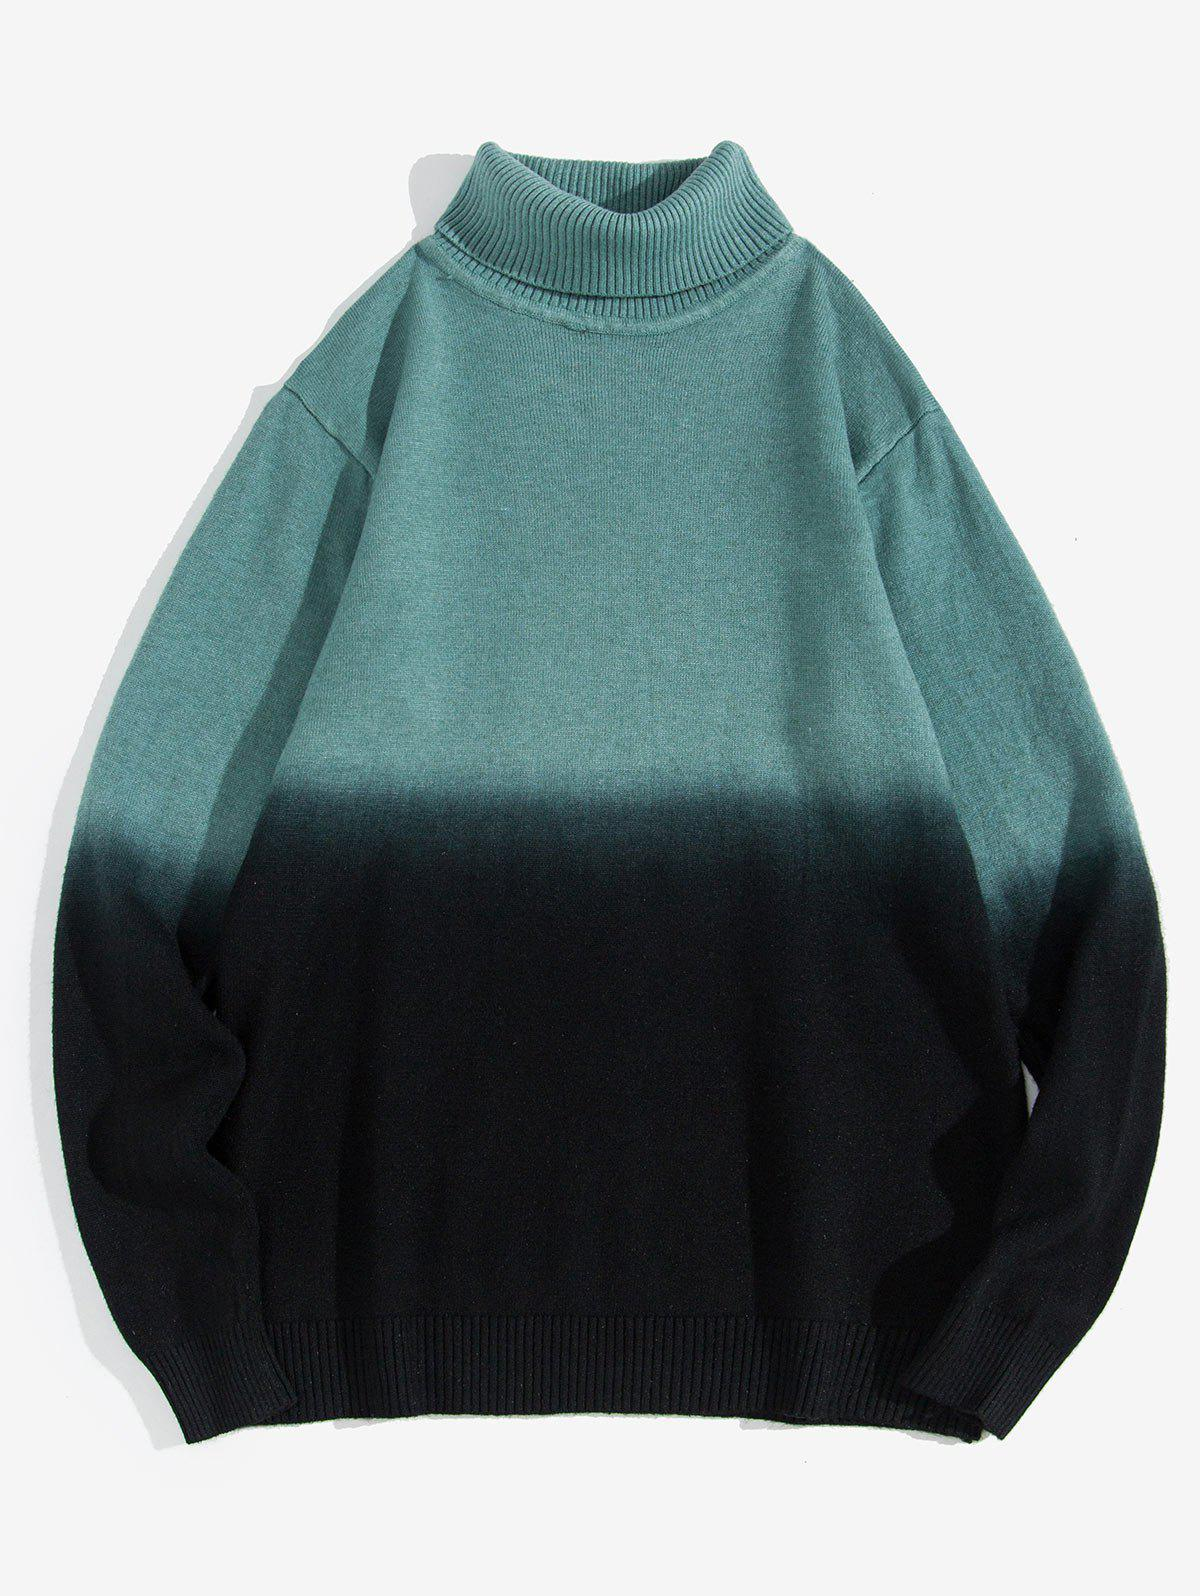 Sale Turtleneck Two-tone Ombre Sweater